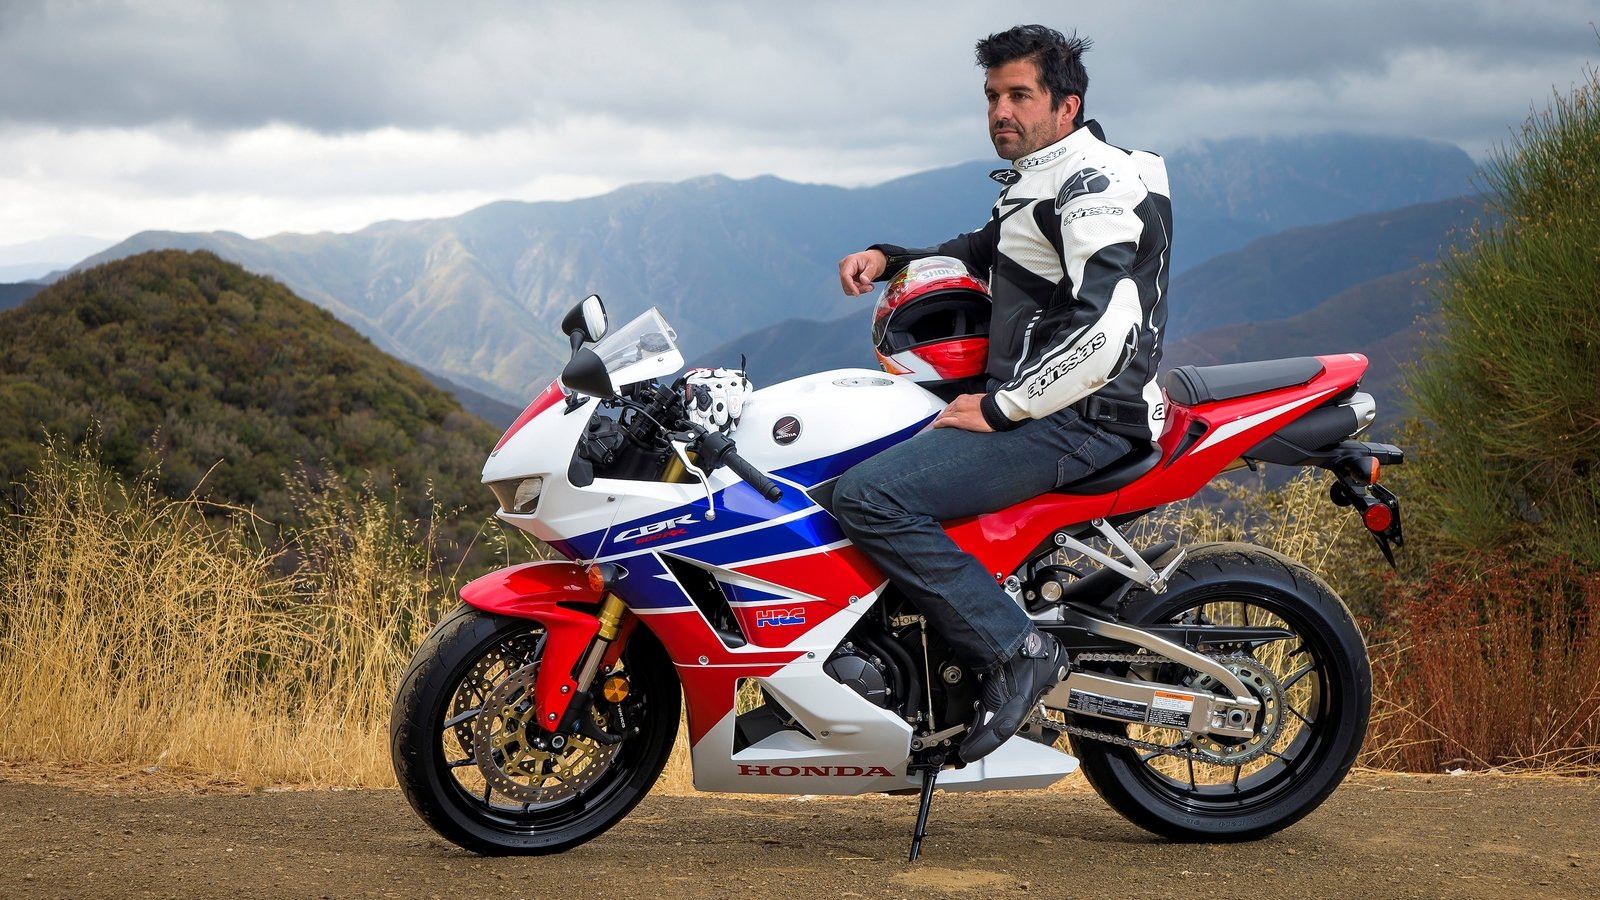 Fuel Injection Cleaner >> Honda CBR Reviews, Specs, Prices, Photos And Videos | Top ...